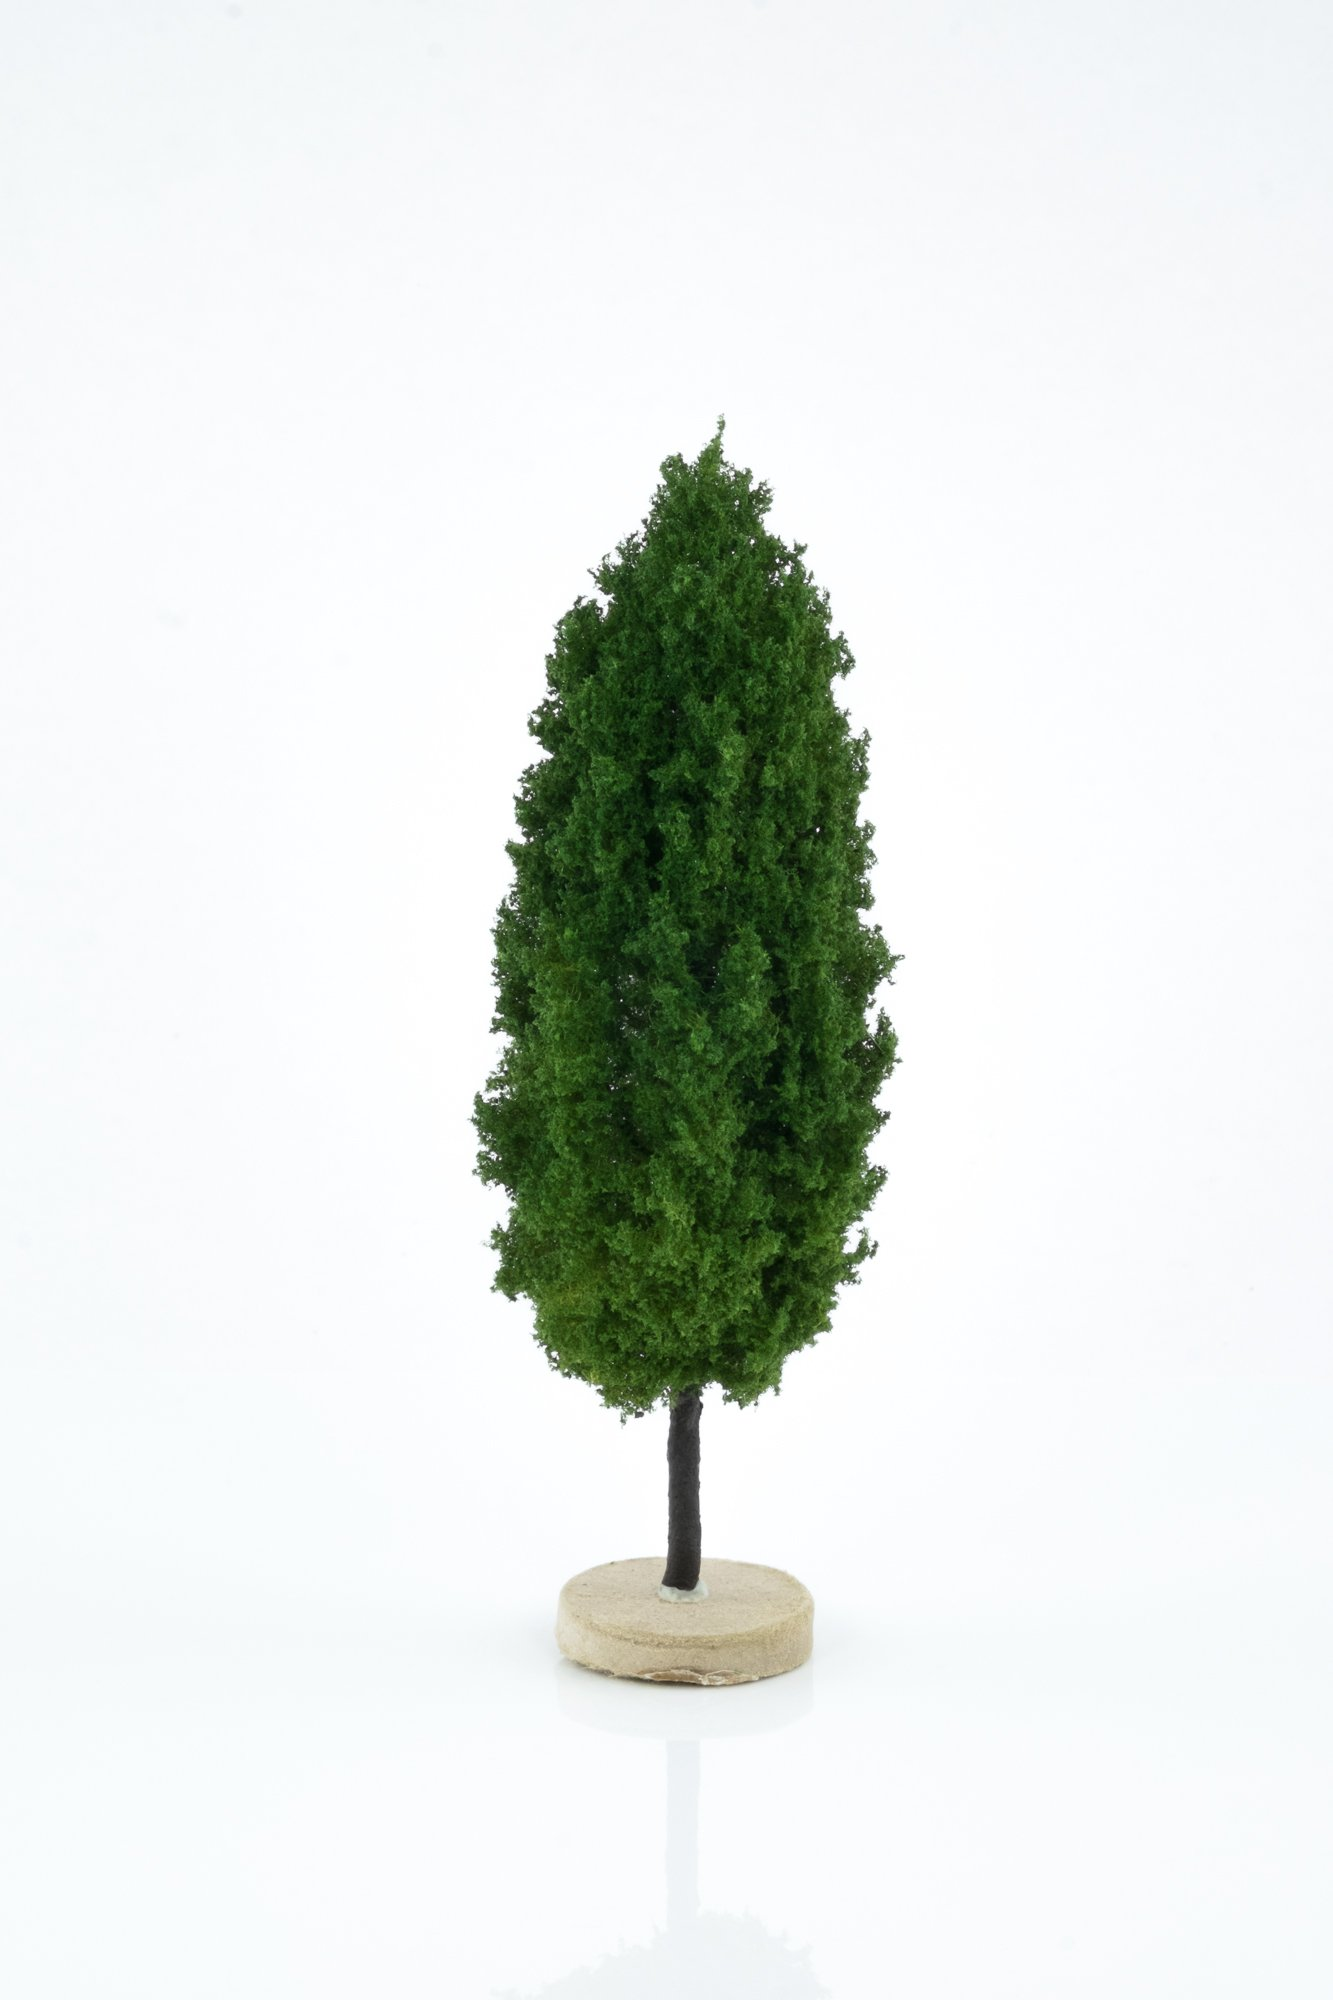 Hand-made, green, poplar tree model. Size between 14 and 16 cm. Made from high quality model supplies by Primo Models.